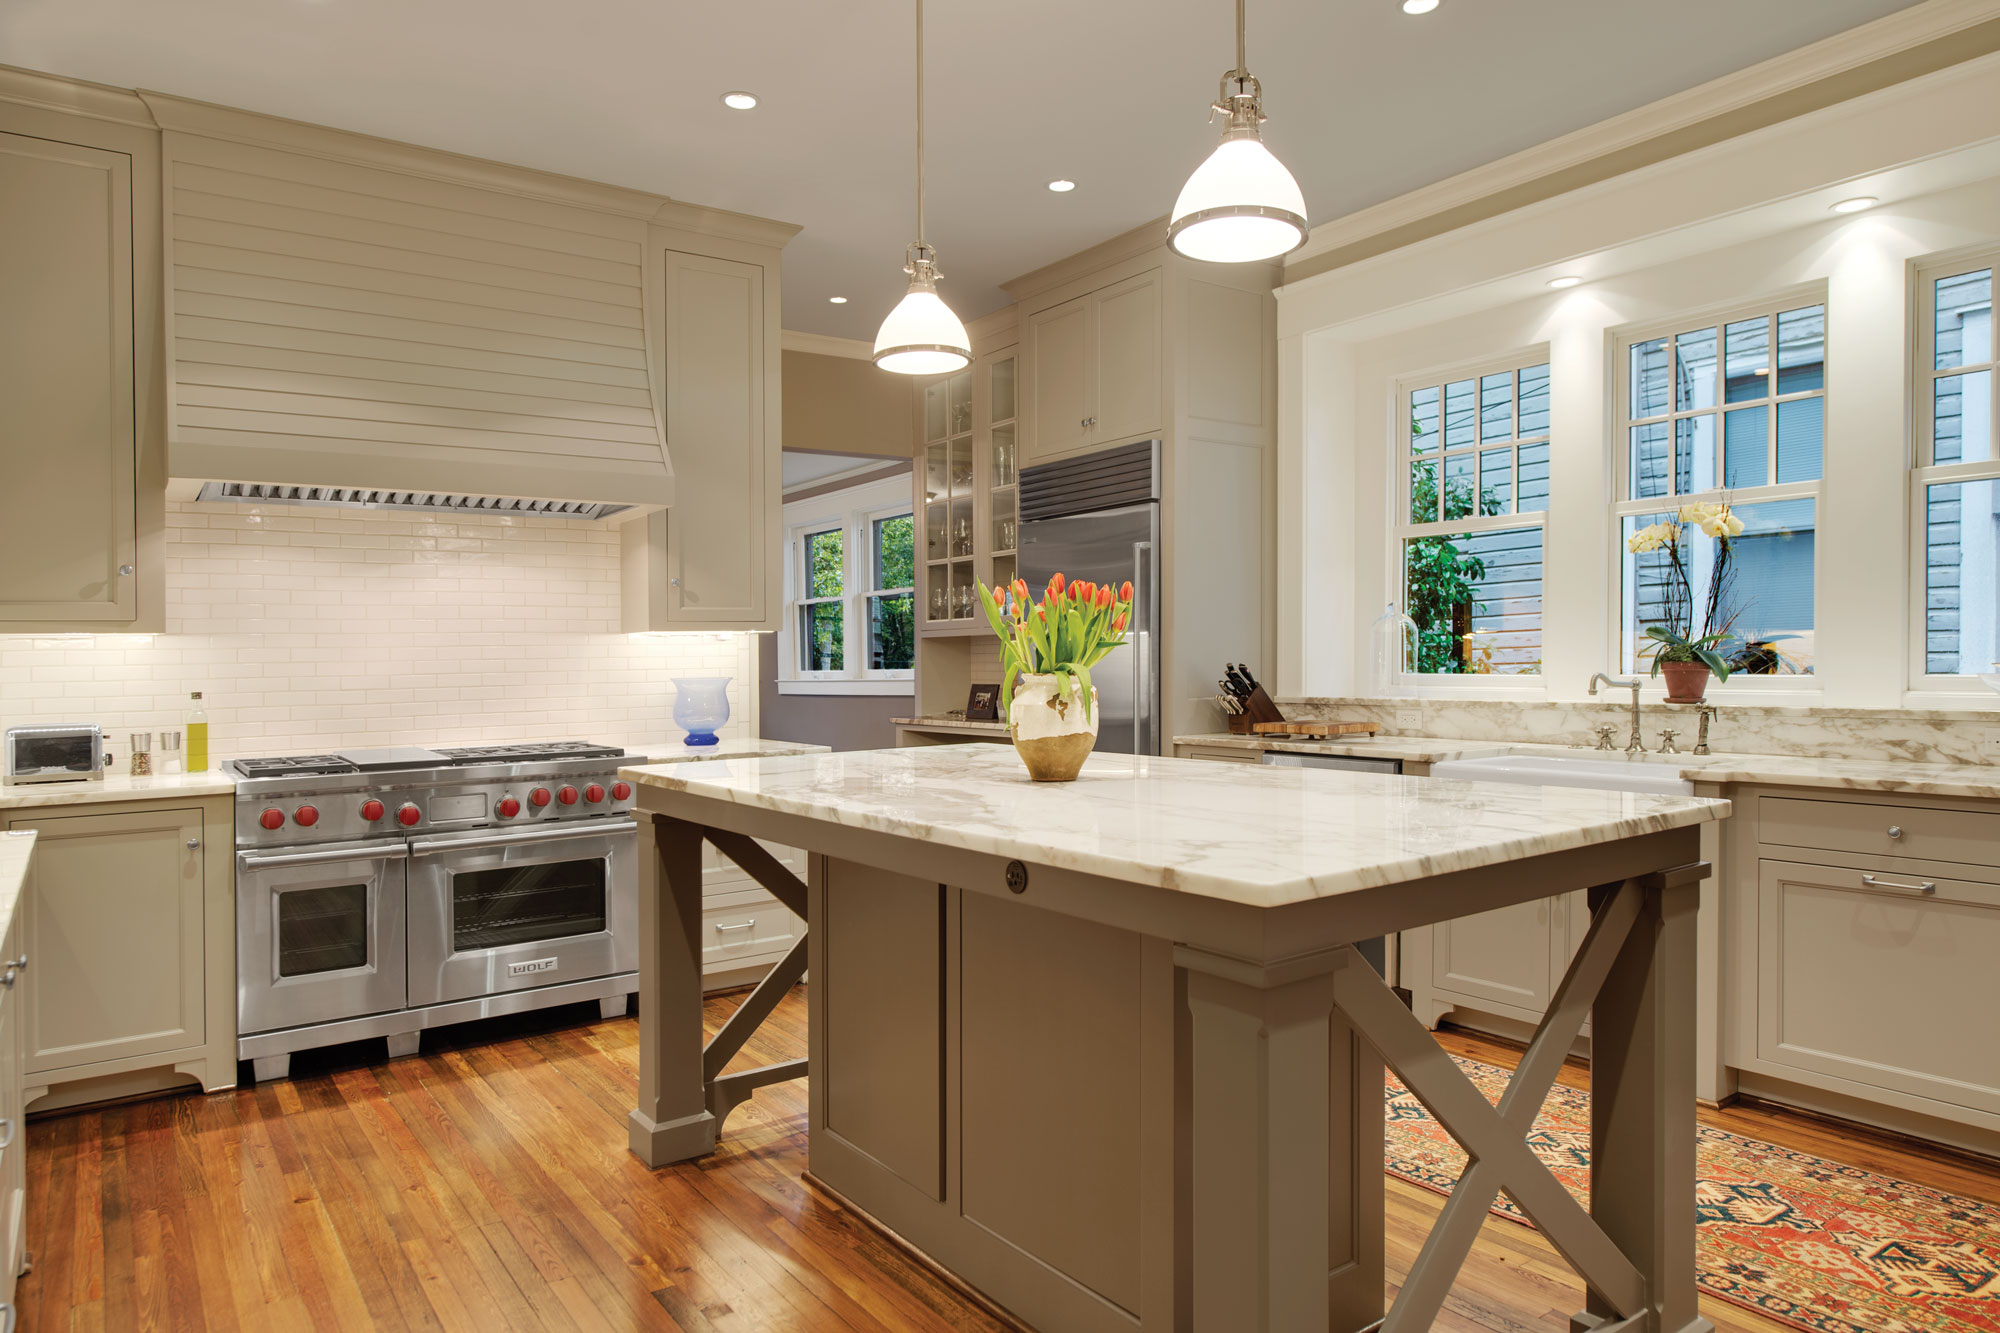 Kitchen Remodel Merges Style and Utility | Remodeling | Awards ...